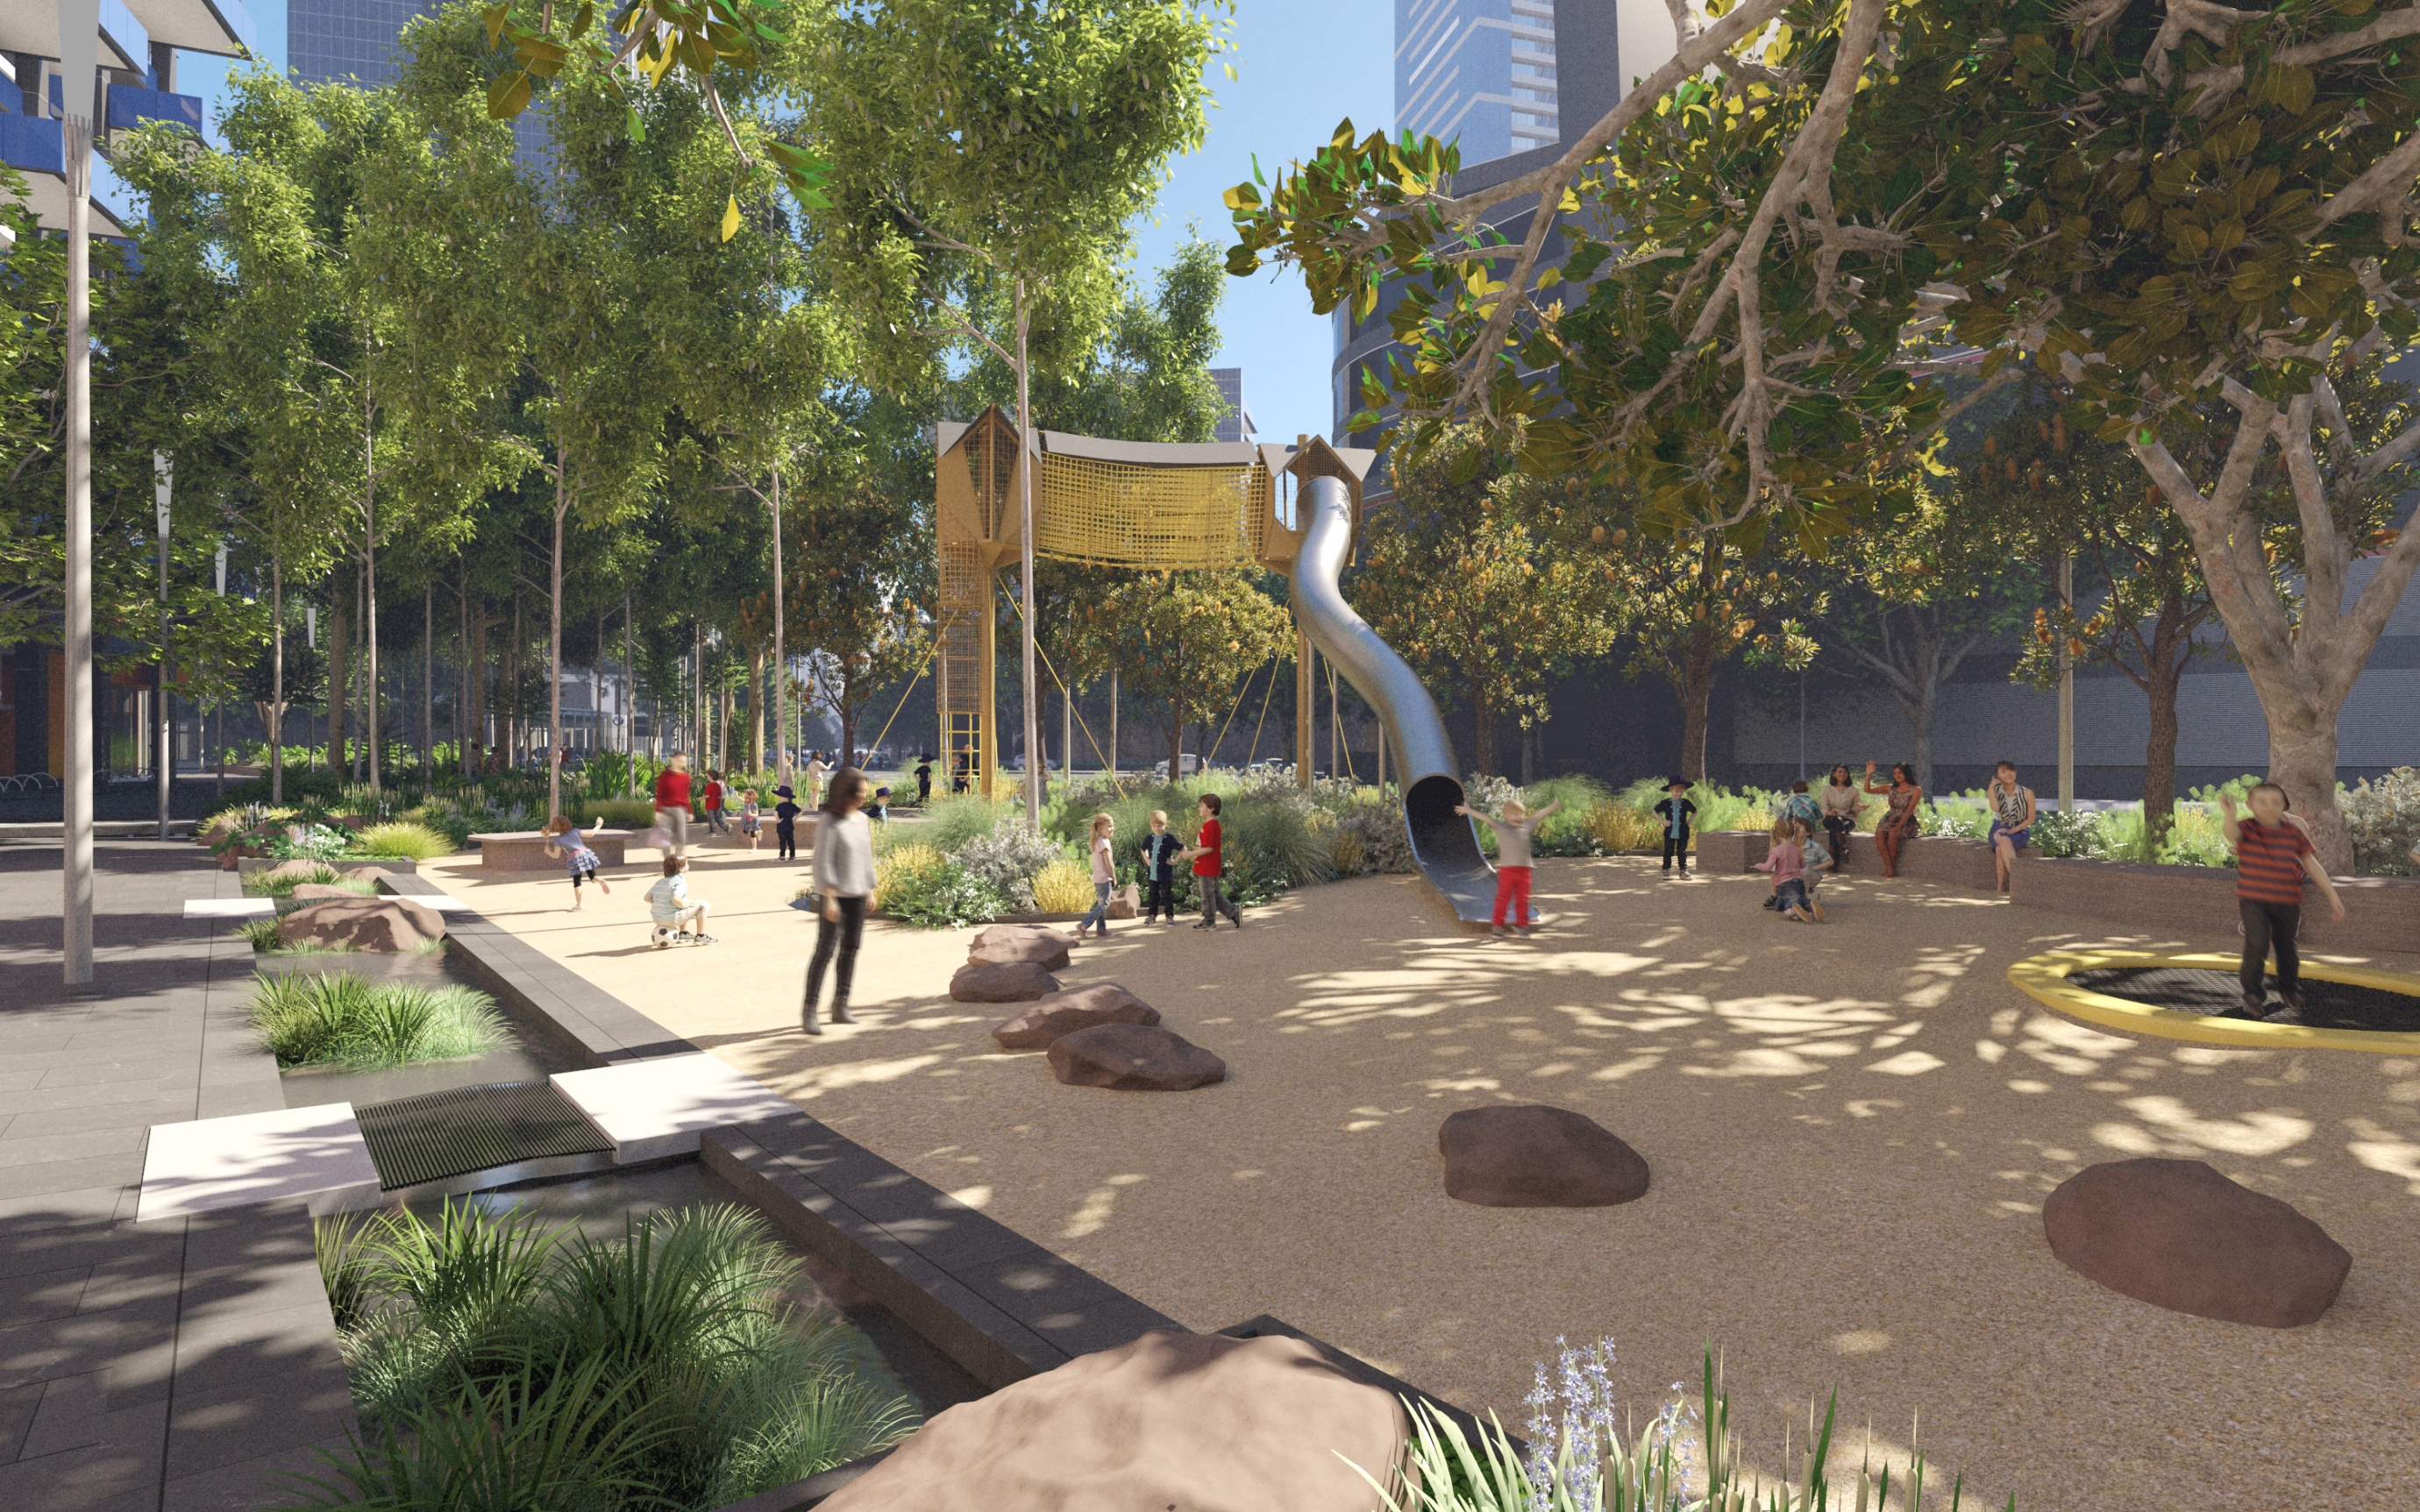 Kavanagh Street to Fawkner Street with new trees and play space